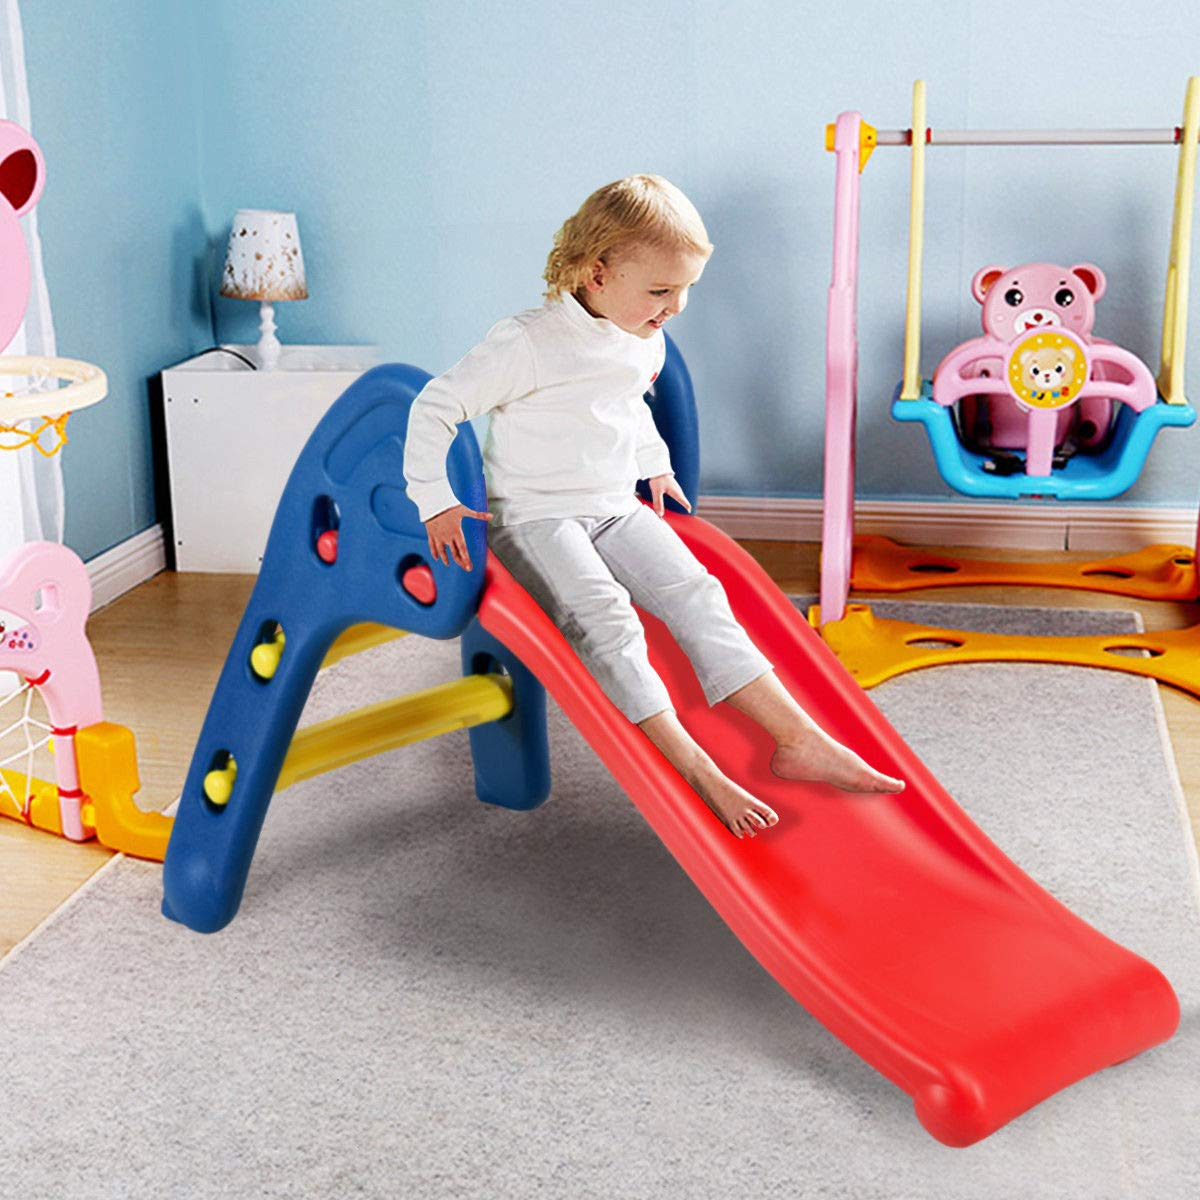 Heavens Tvcz Slide Plastic Folding Kids Fun Toy Up-Down Children Play Fun Step Rails Toddler Big High Side Portable Outdoor Indoor by Heavens Tvcz (Image #3)